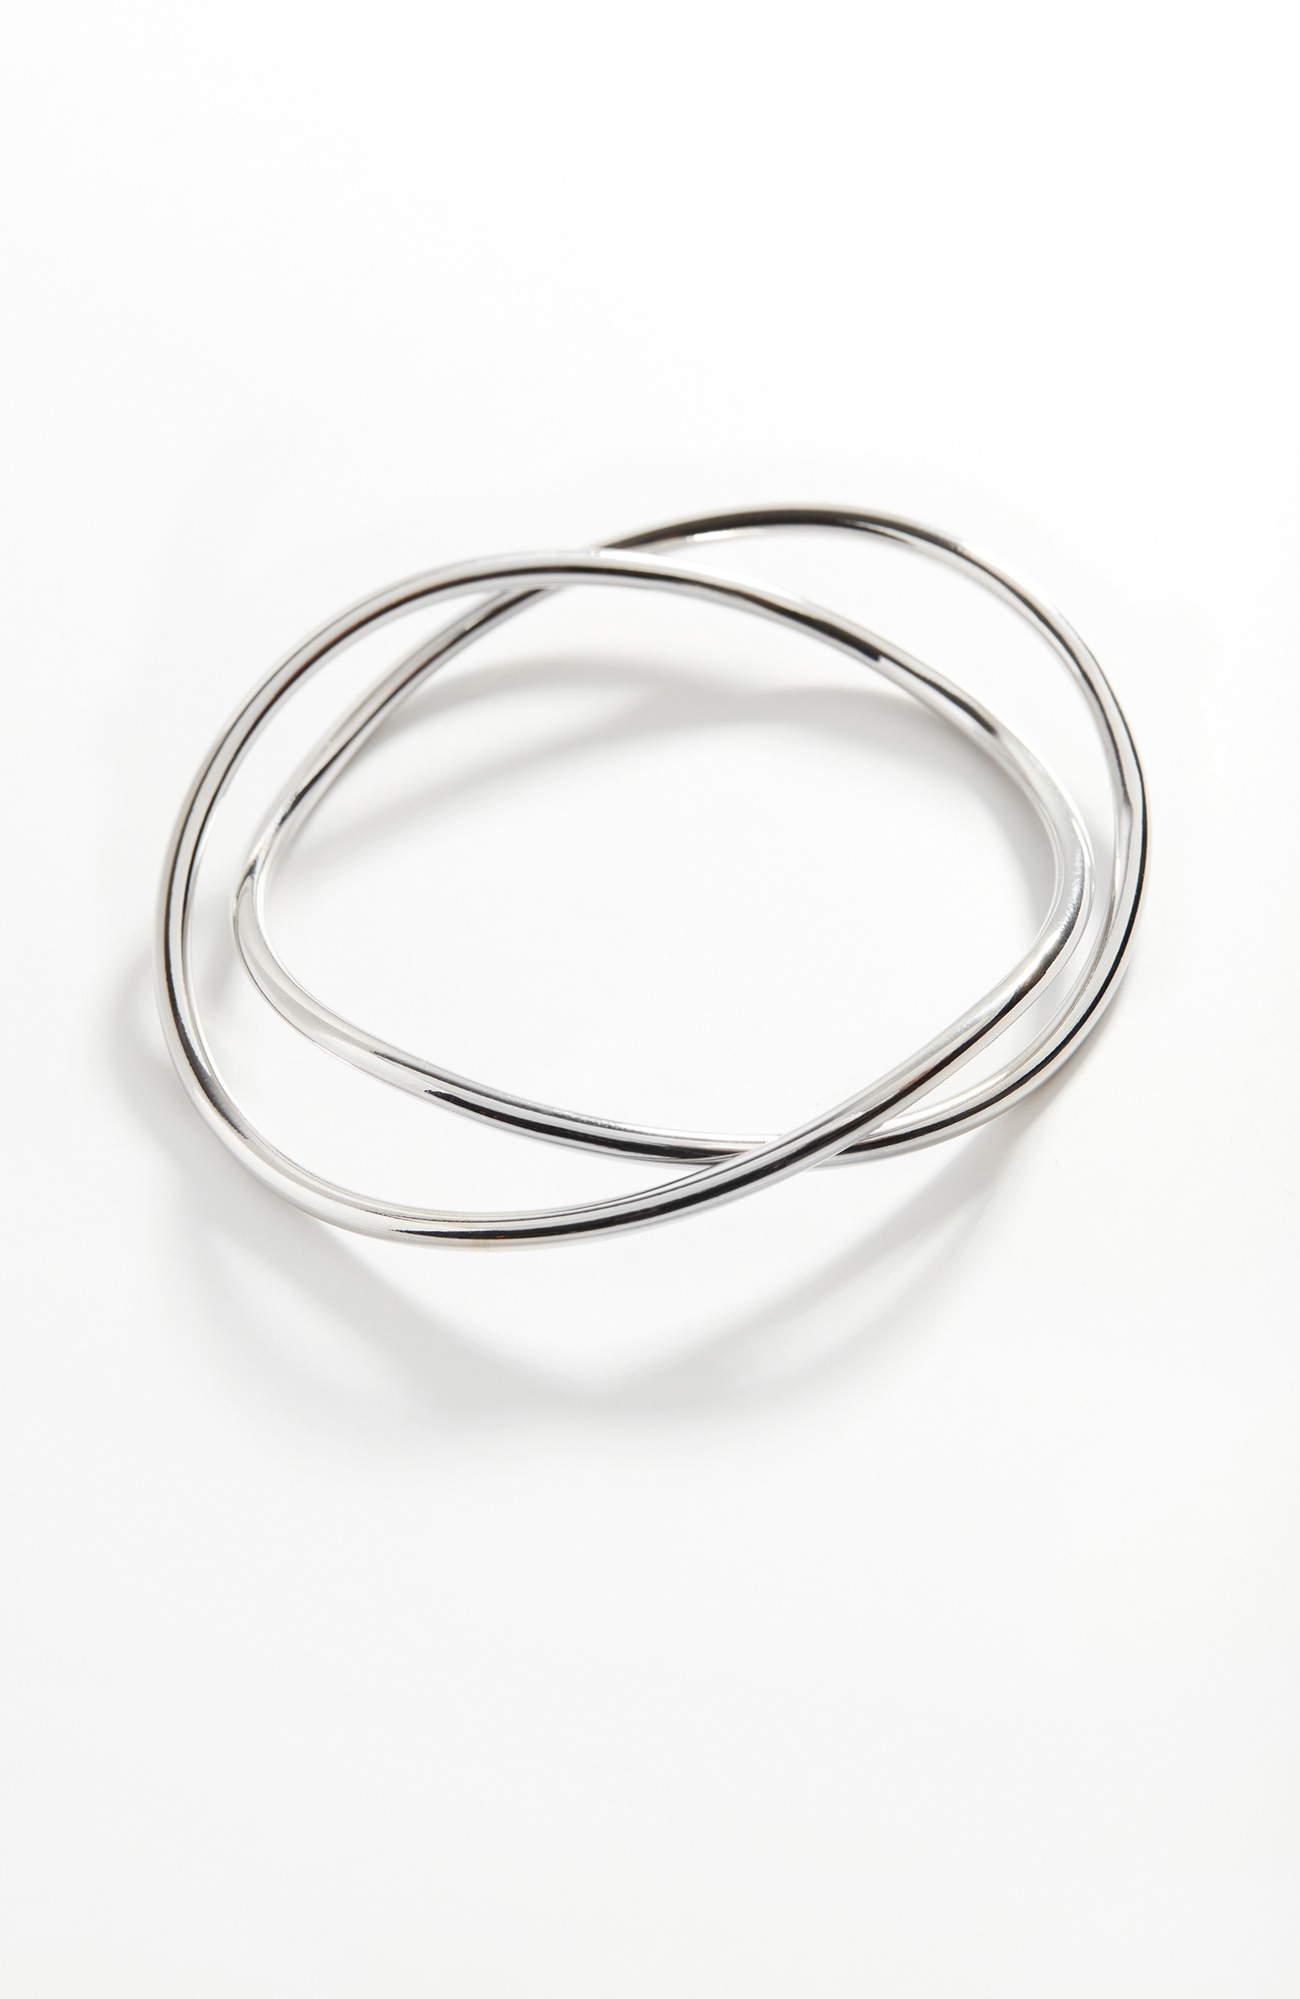 sculpted-metal bangle stack